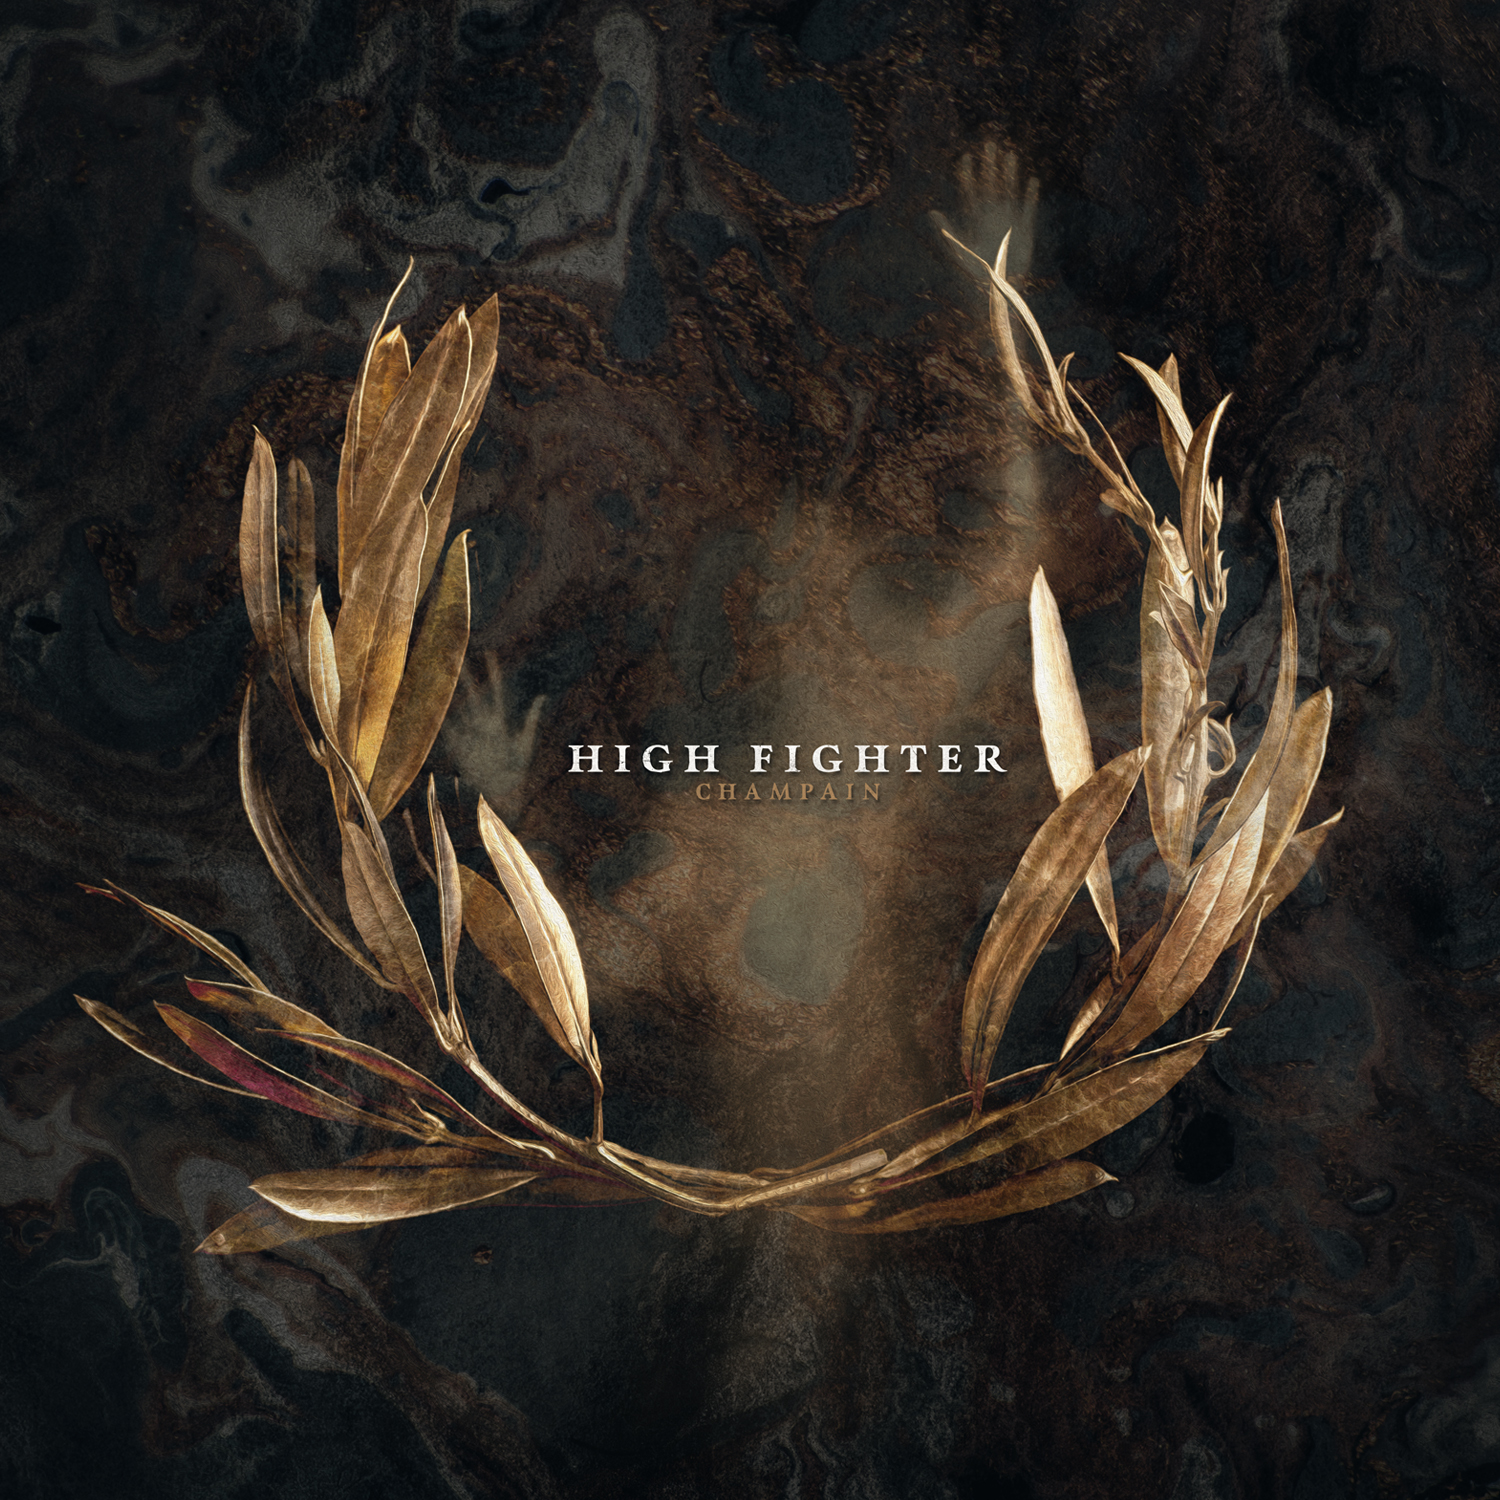 high-fighter-champain-voe-26-07-19-album-review